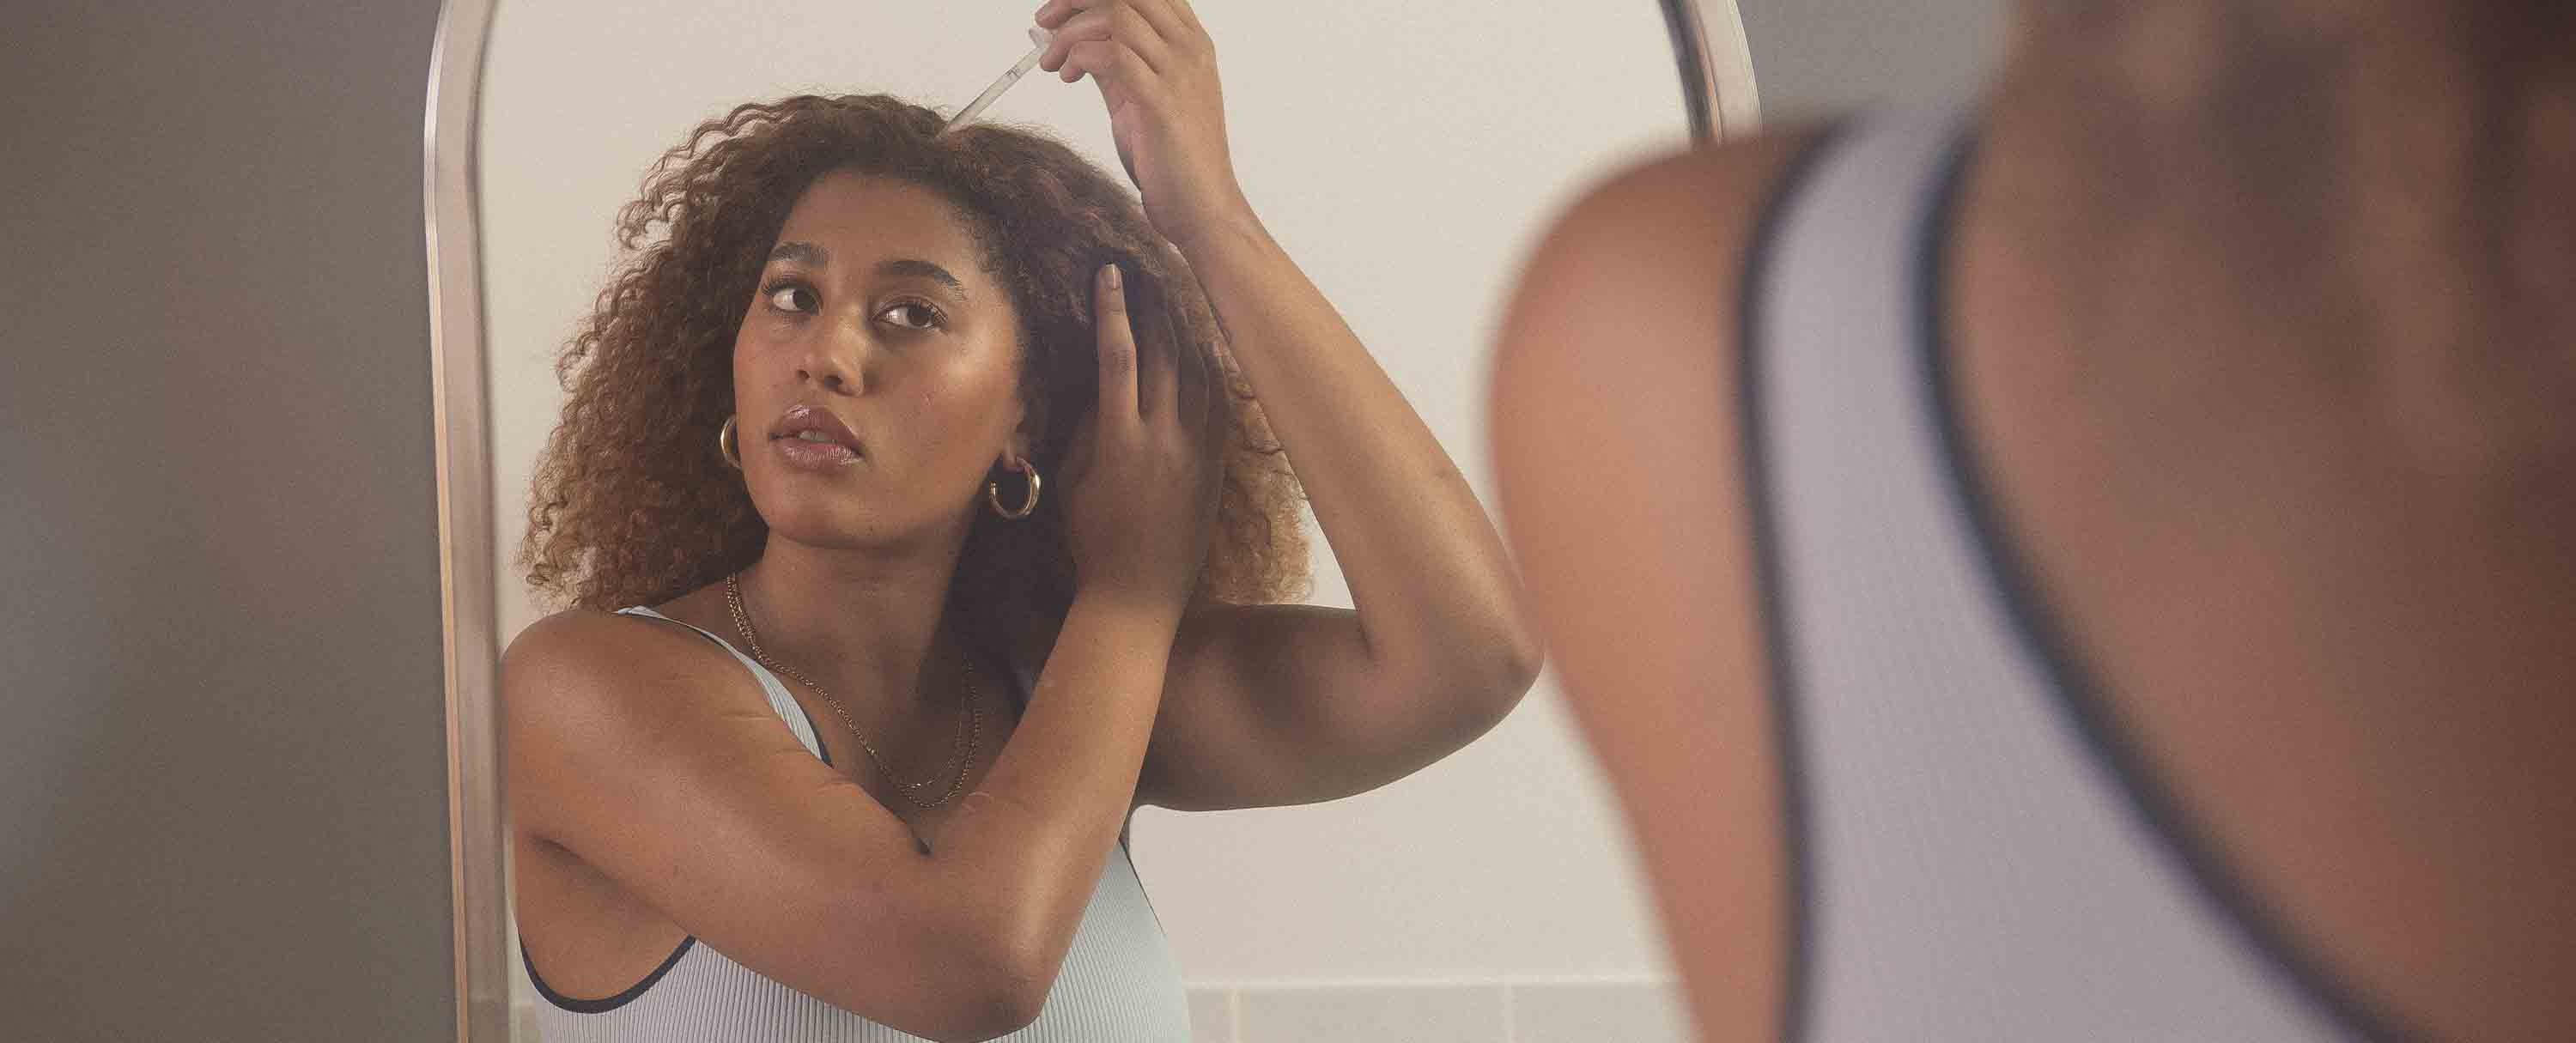 Essential Oils for Hair Growth: What We Know